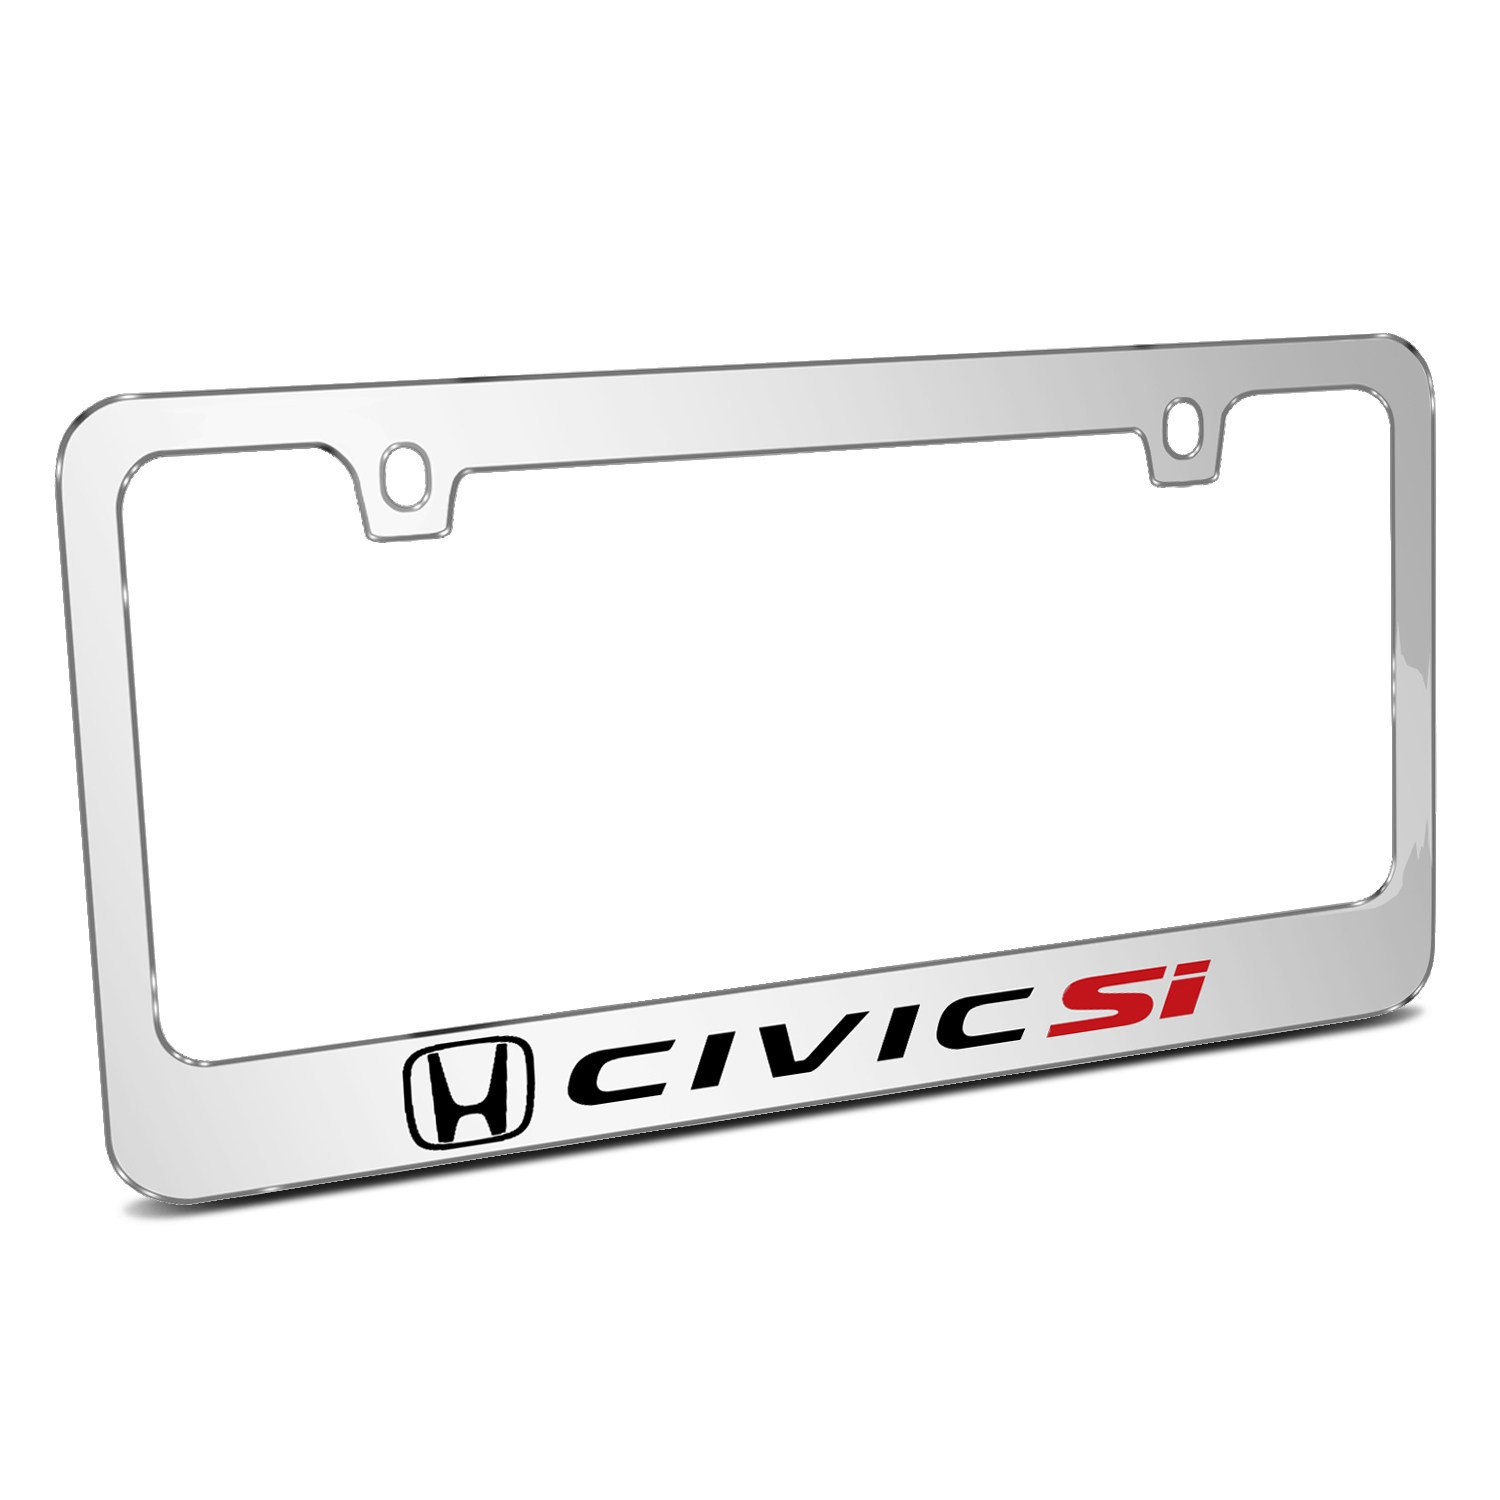 Honda Civic Si Mirror Chrome Metal License Plate Frame